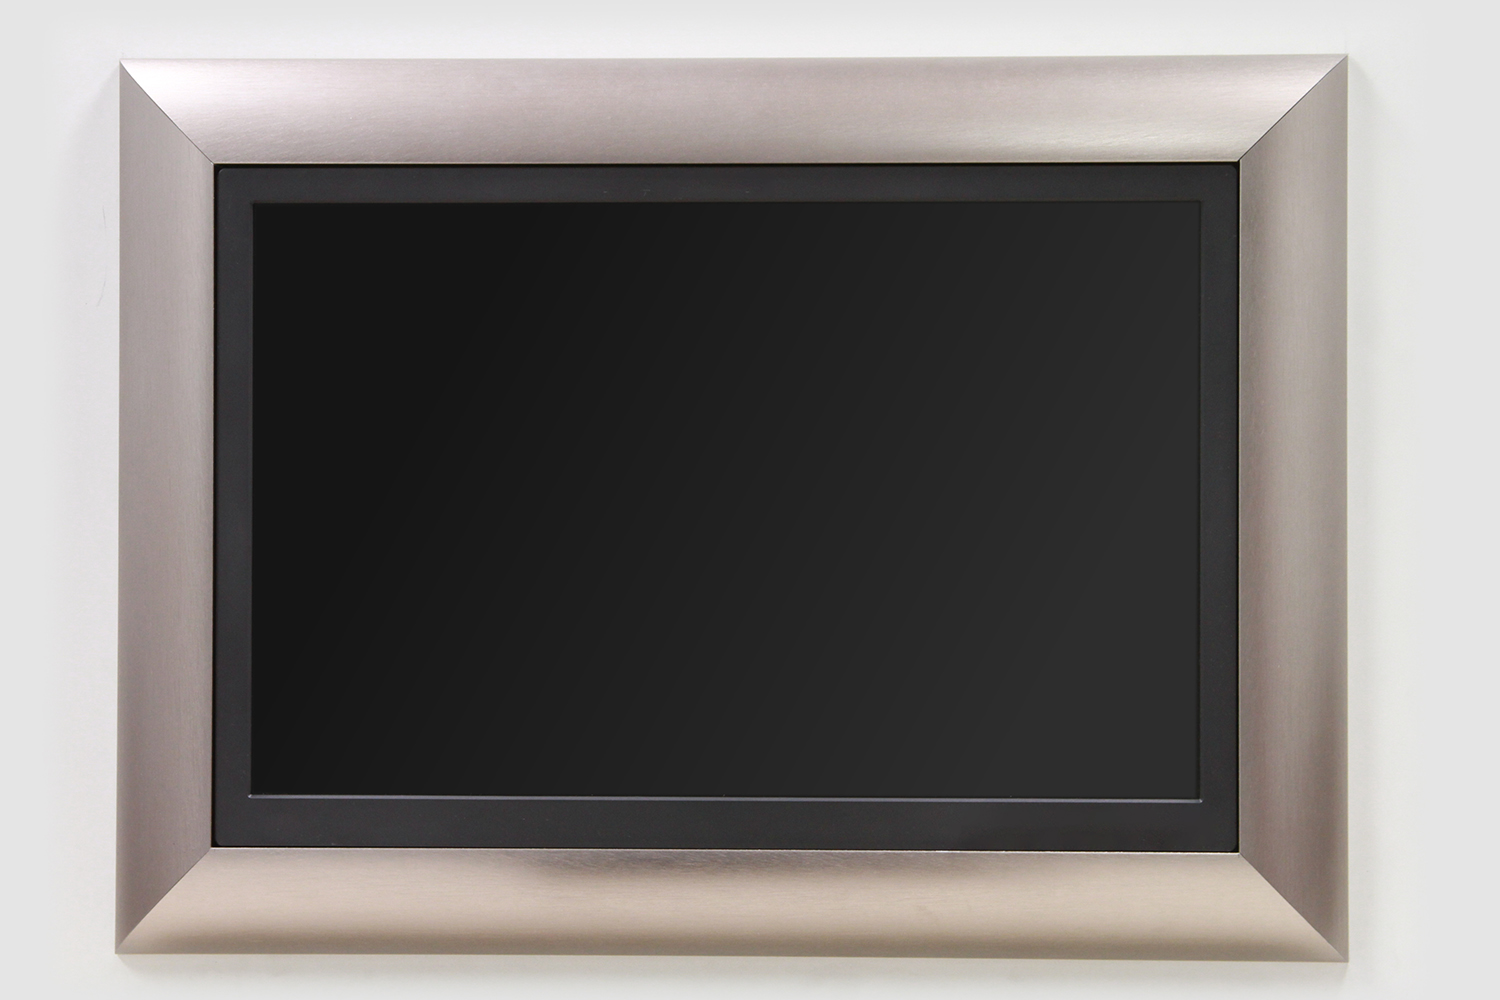 """MonitorMaker kits can support video walls or monitors with dimensions up to 136"""" H x 136""""W. For larger installs please contact Stylmark."""